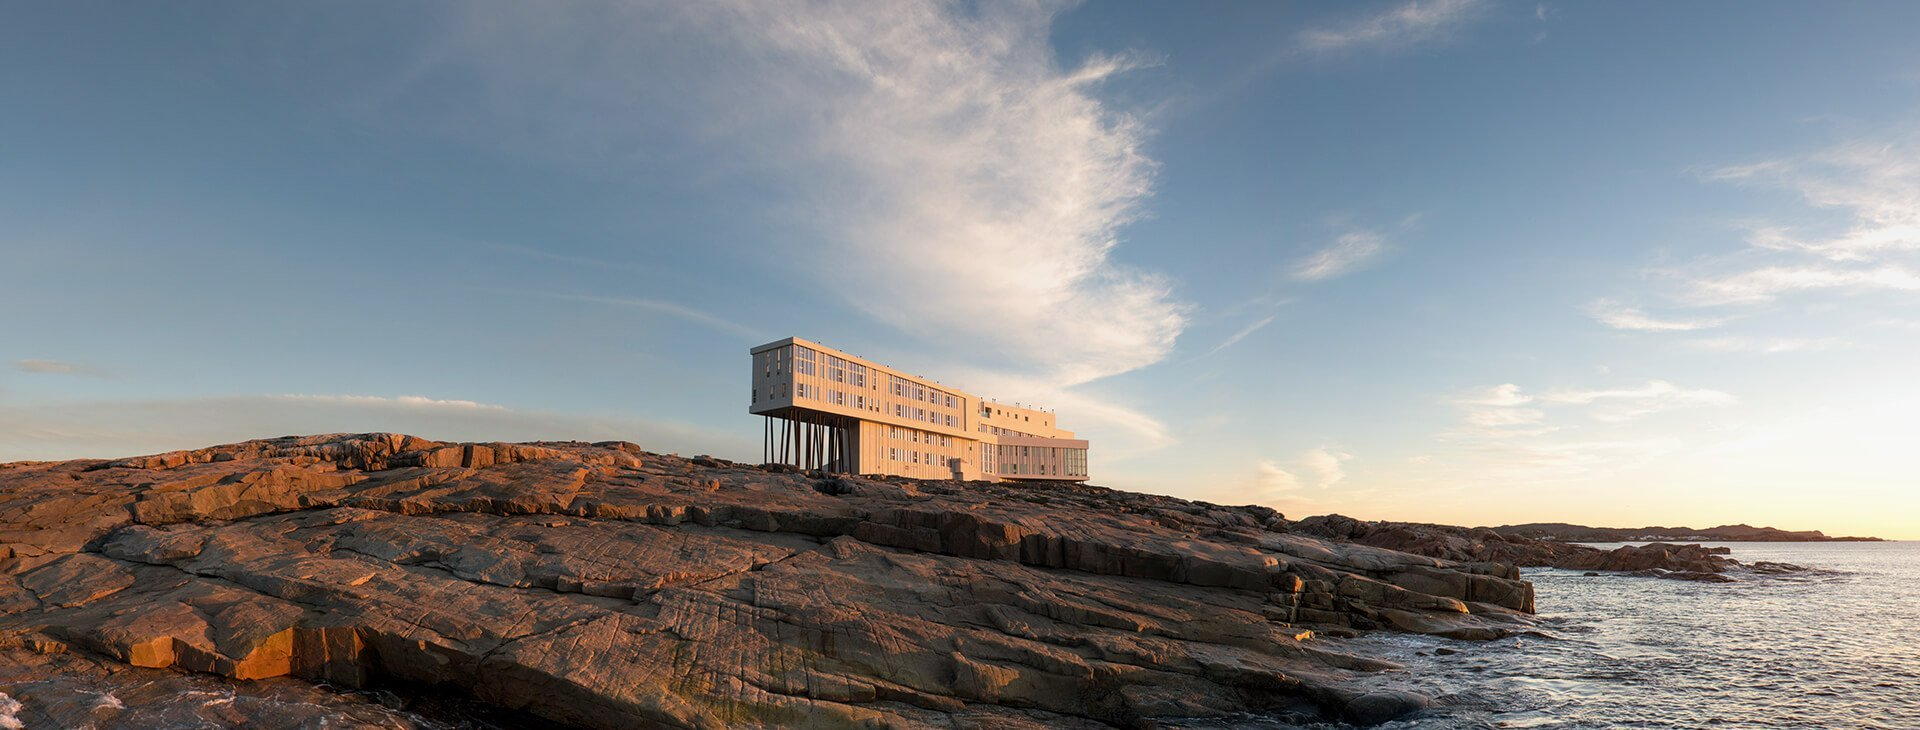 stilwerk_ham_crd_places_to_see_fogo_island-inn_stage